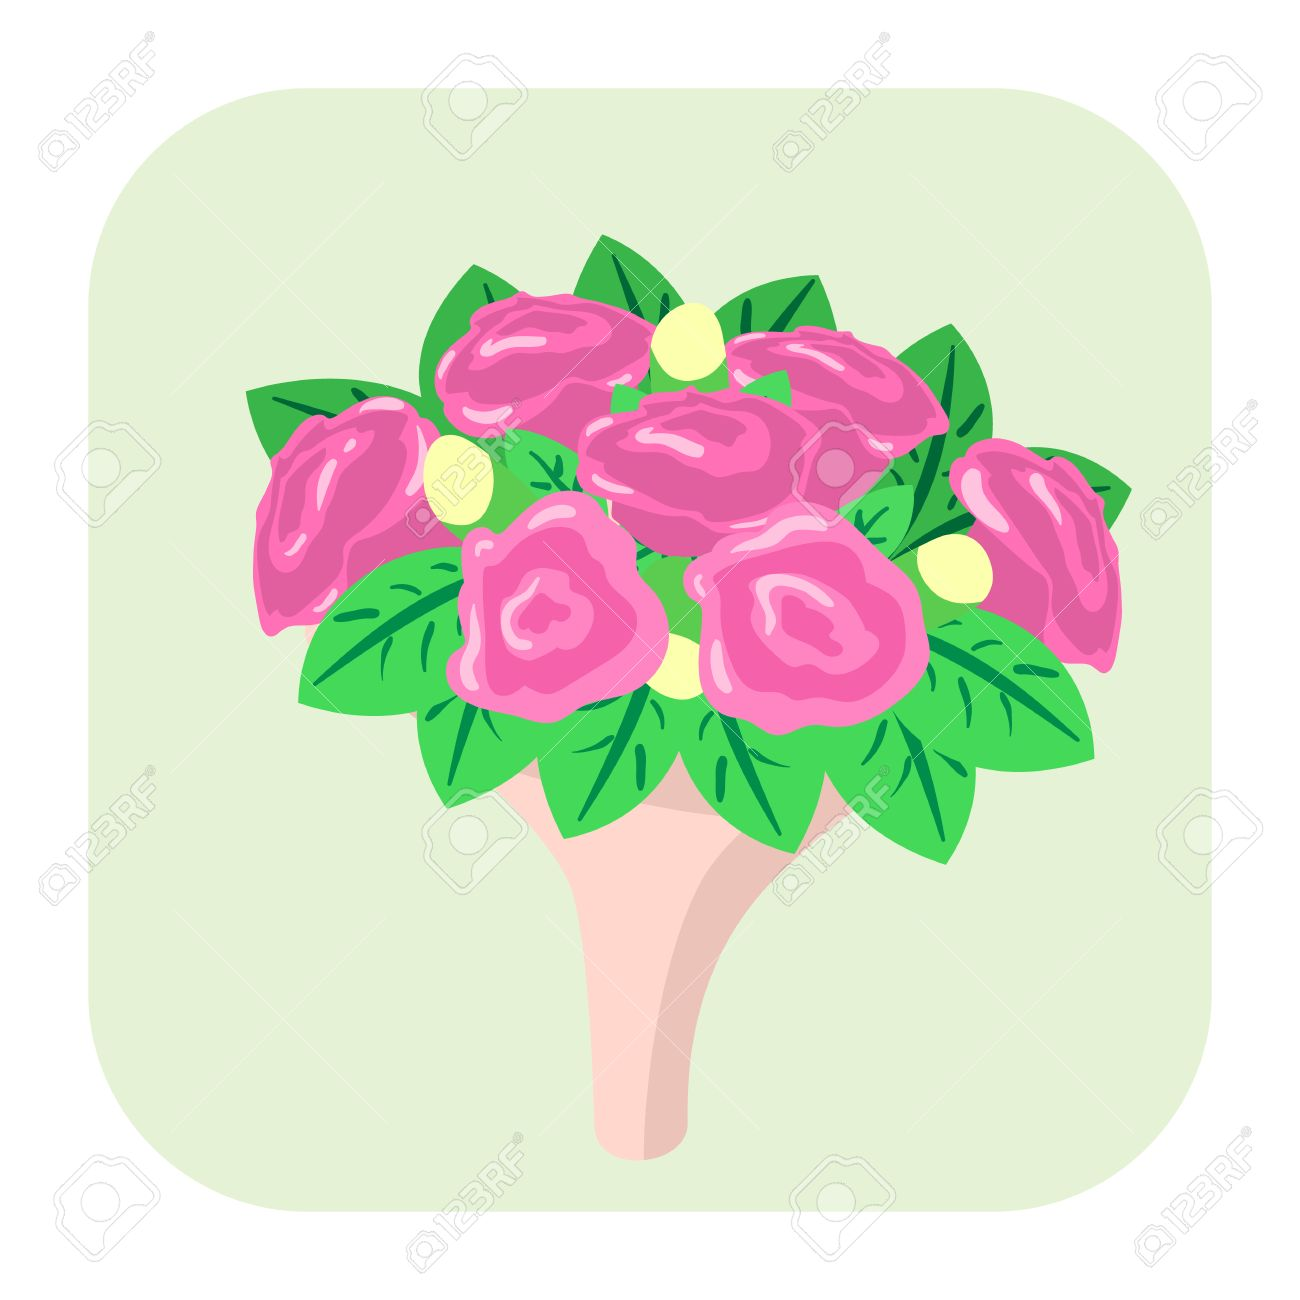 Bouquet Of Flowers Cartoon Icon Isolated On White Background Royalty ...